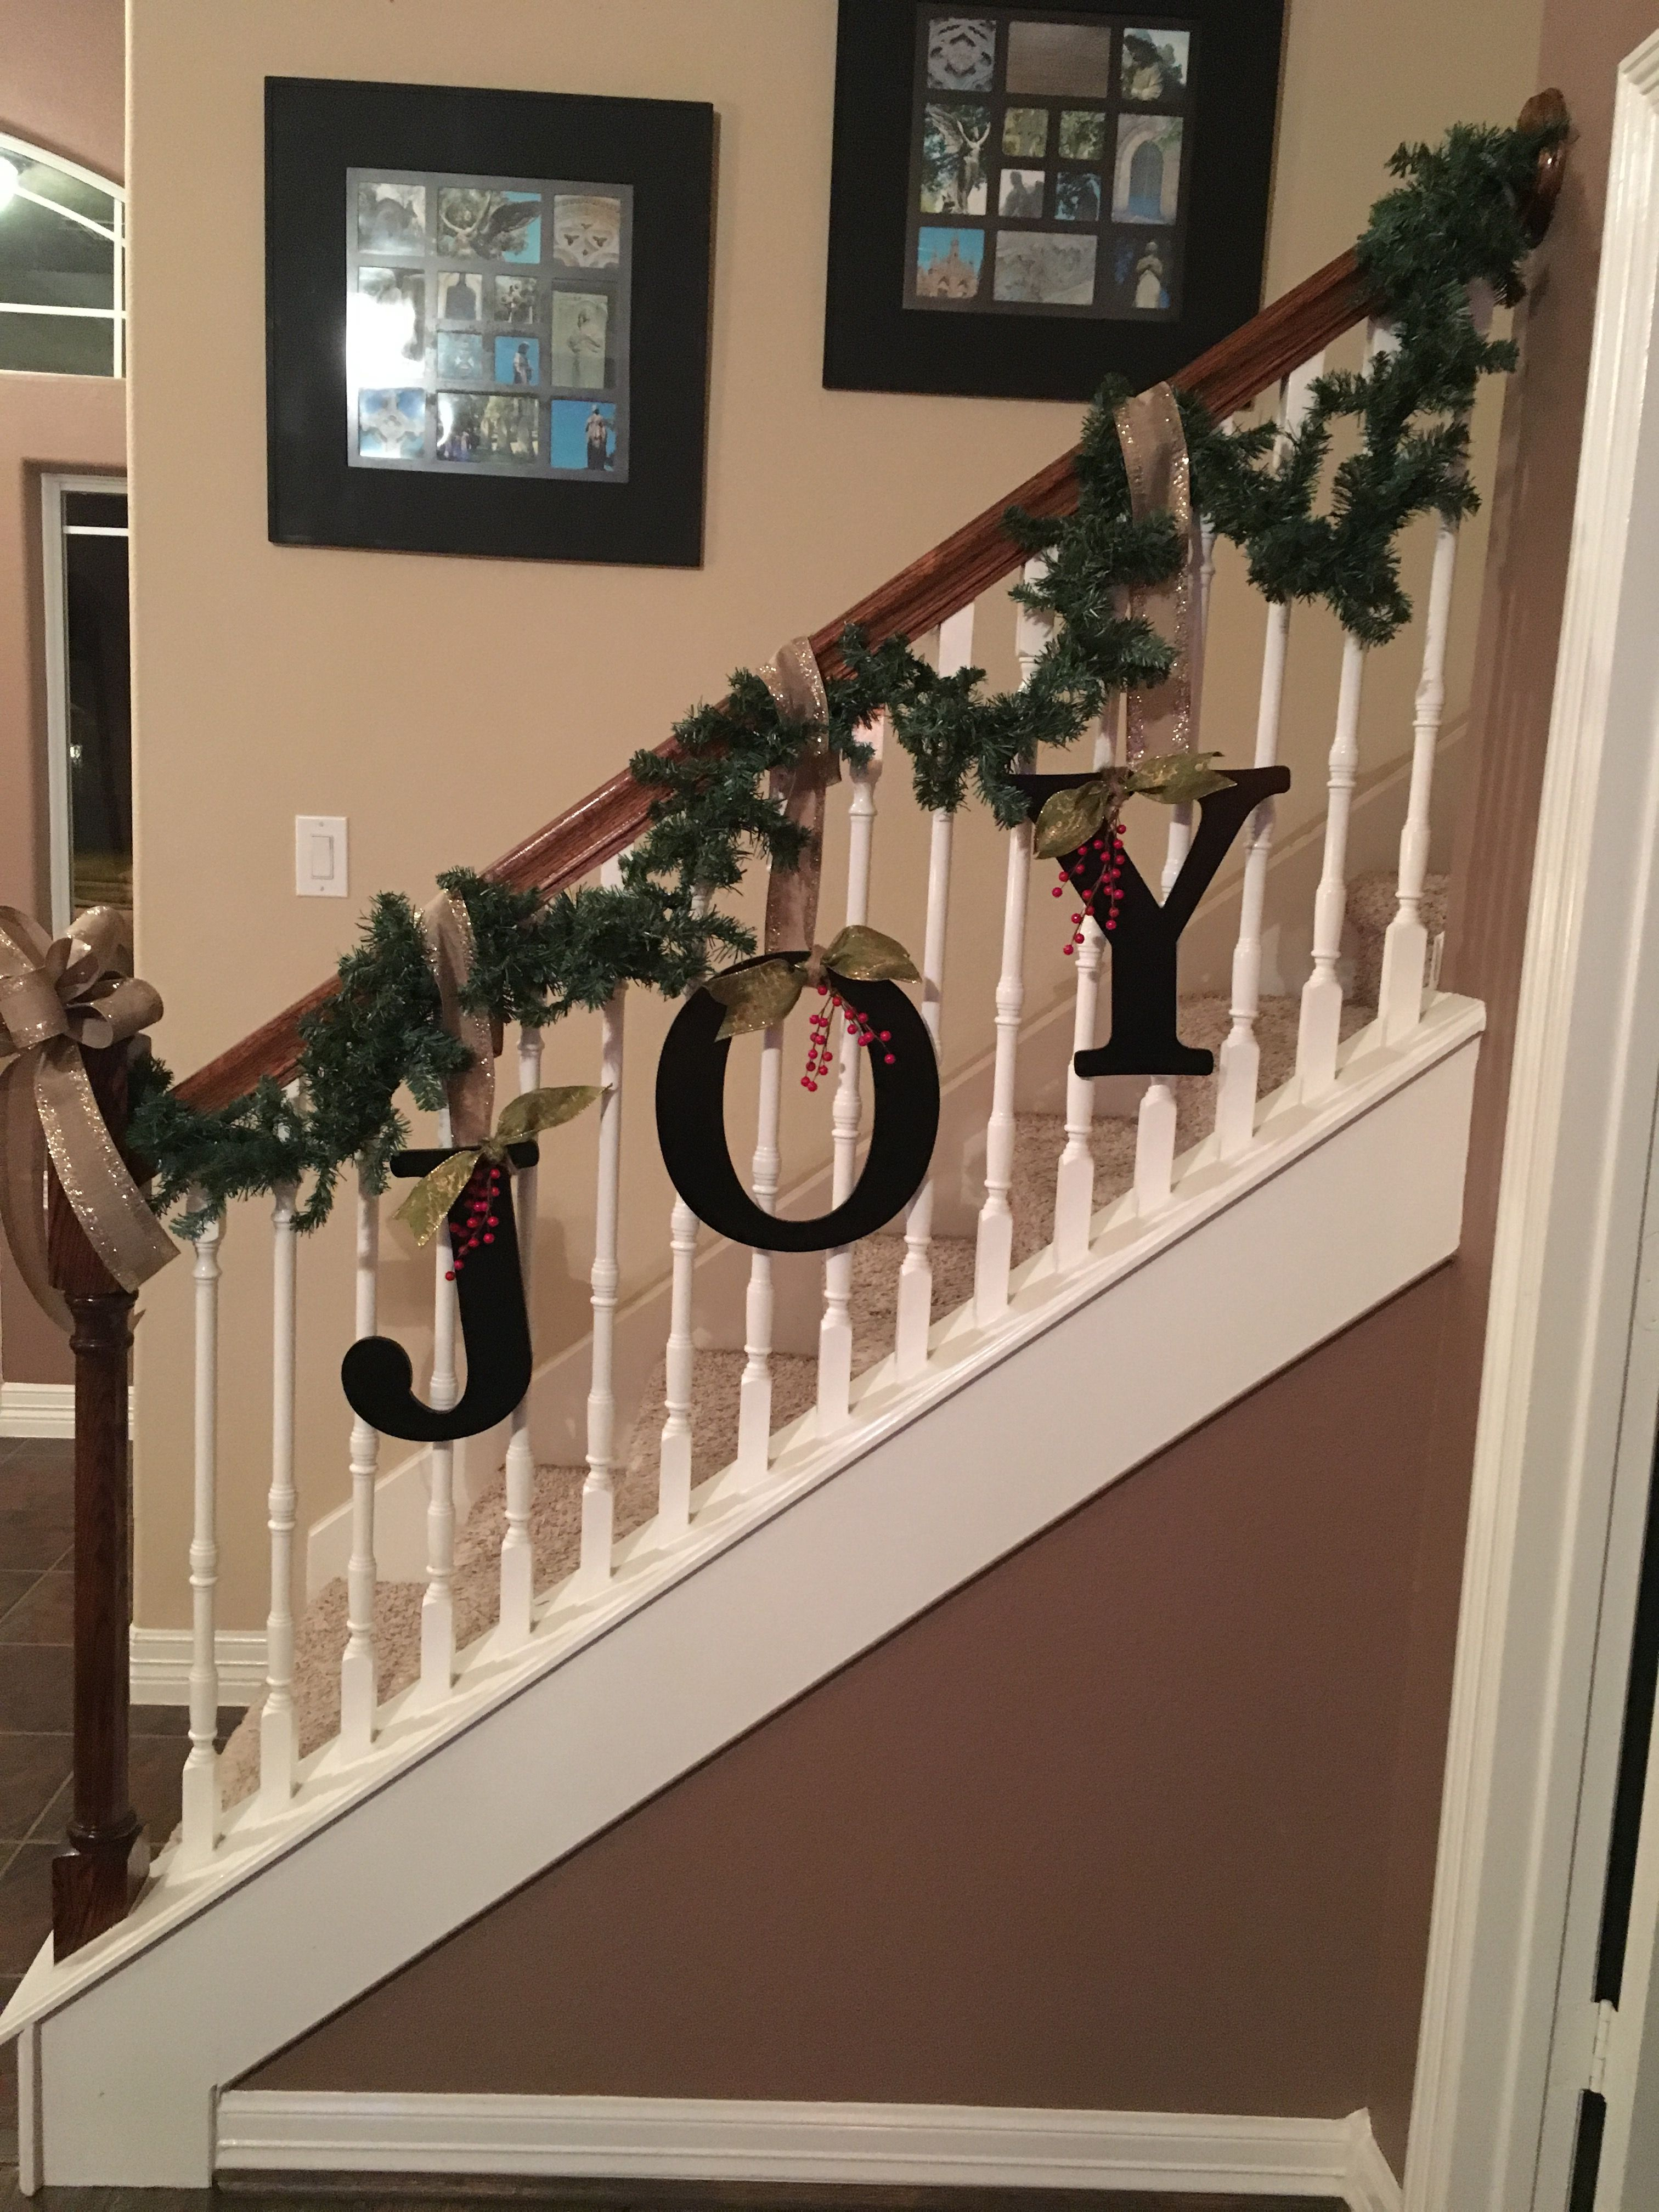 Revamp On Banister For Christmas This Year Teamlejeune